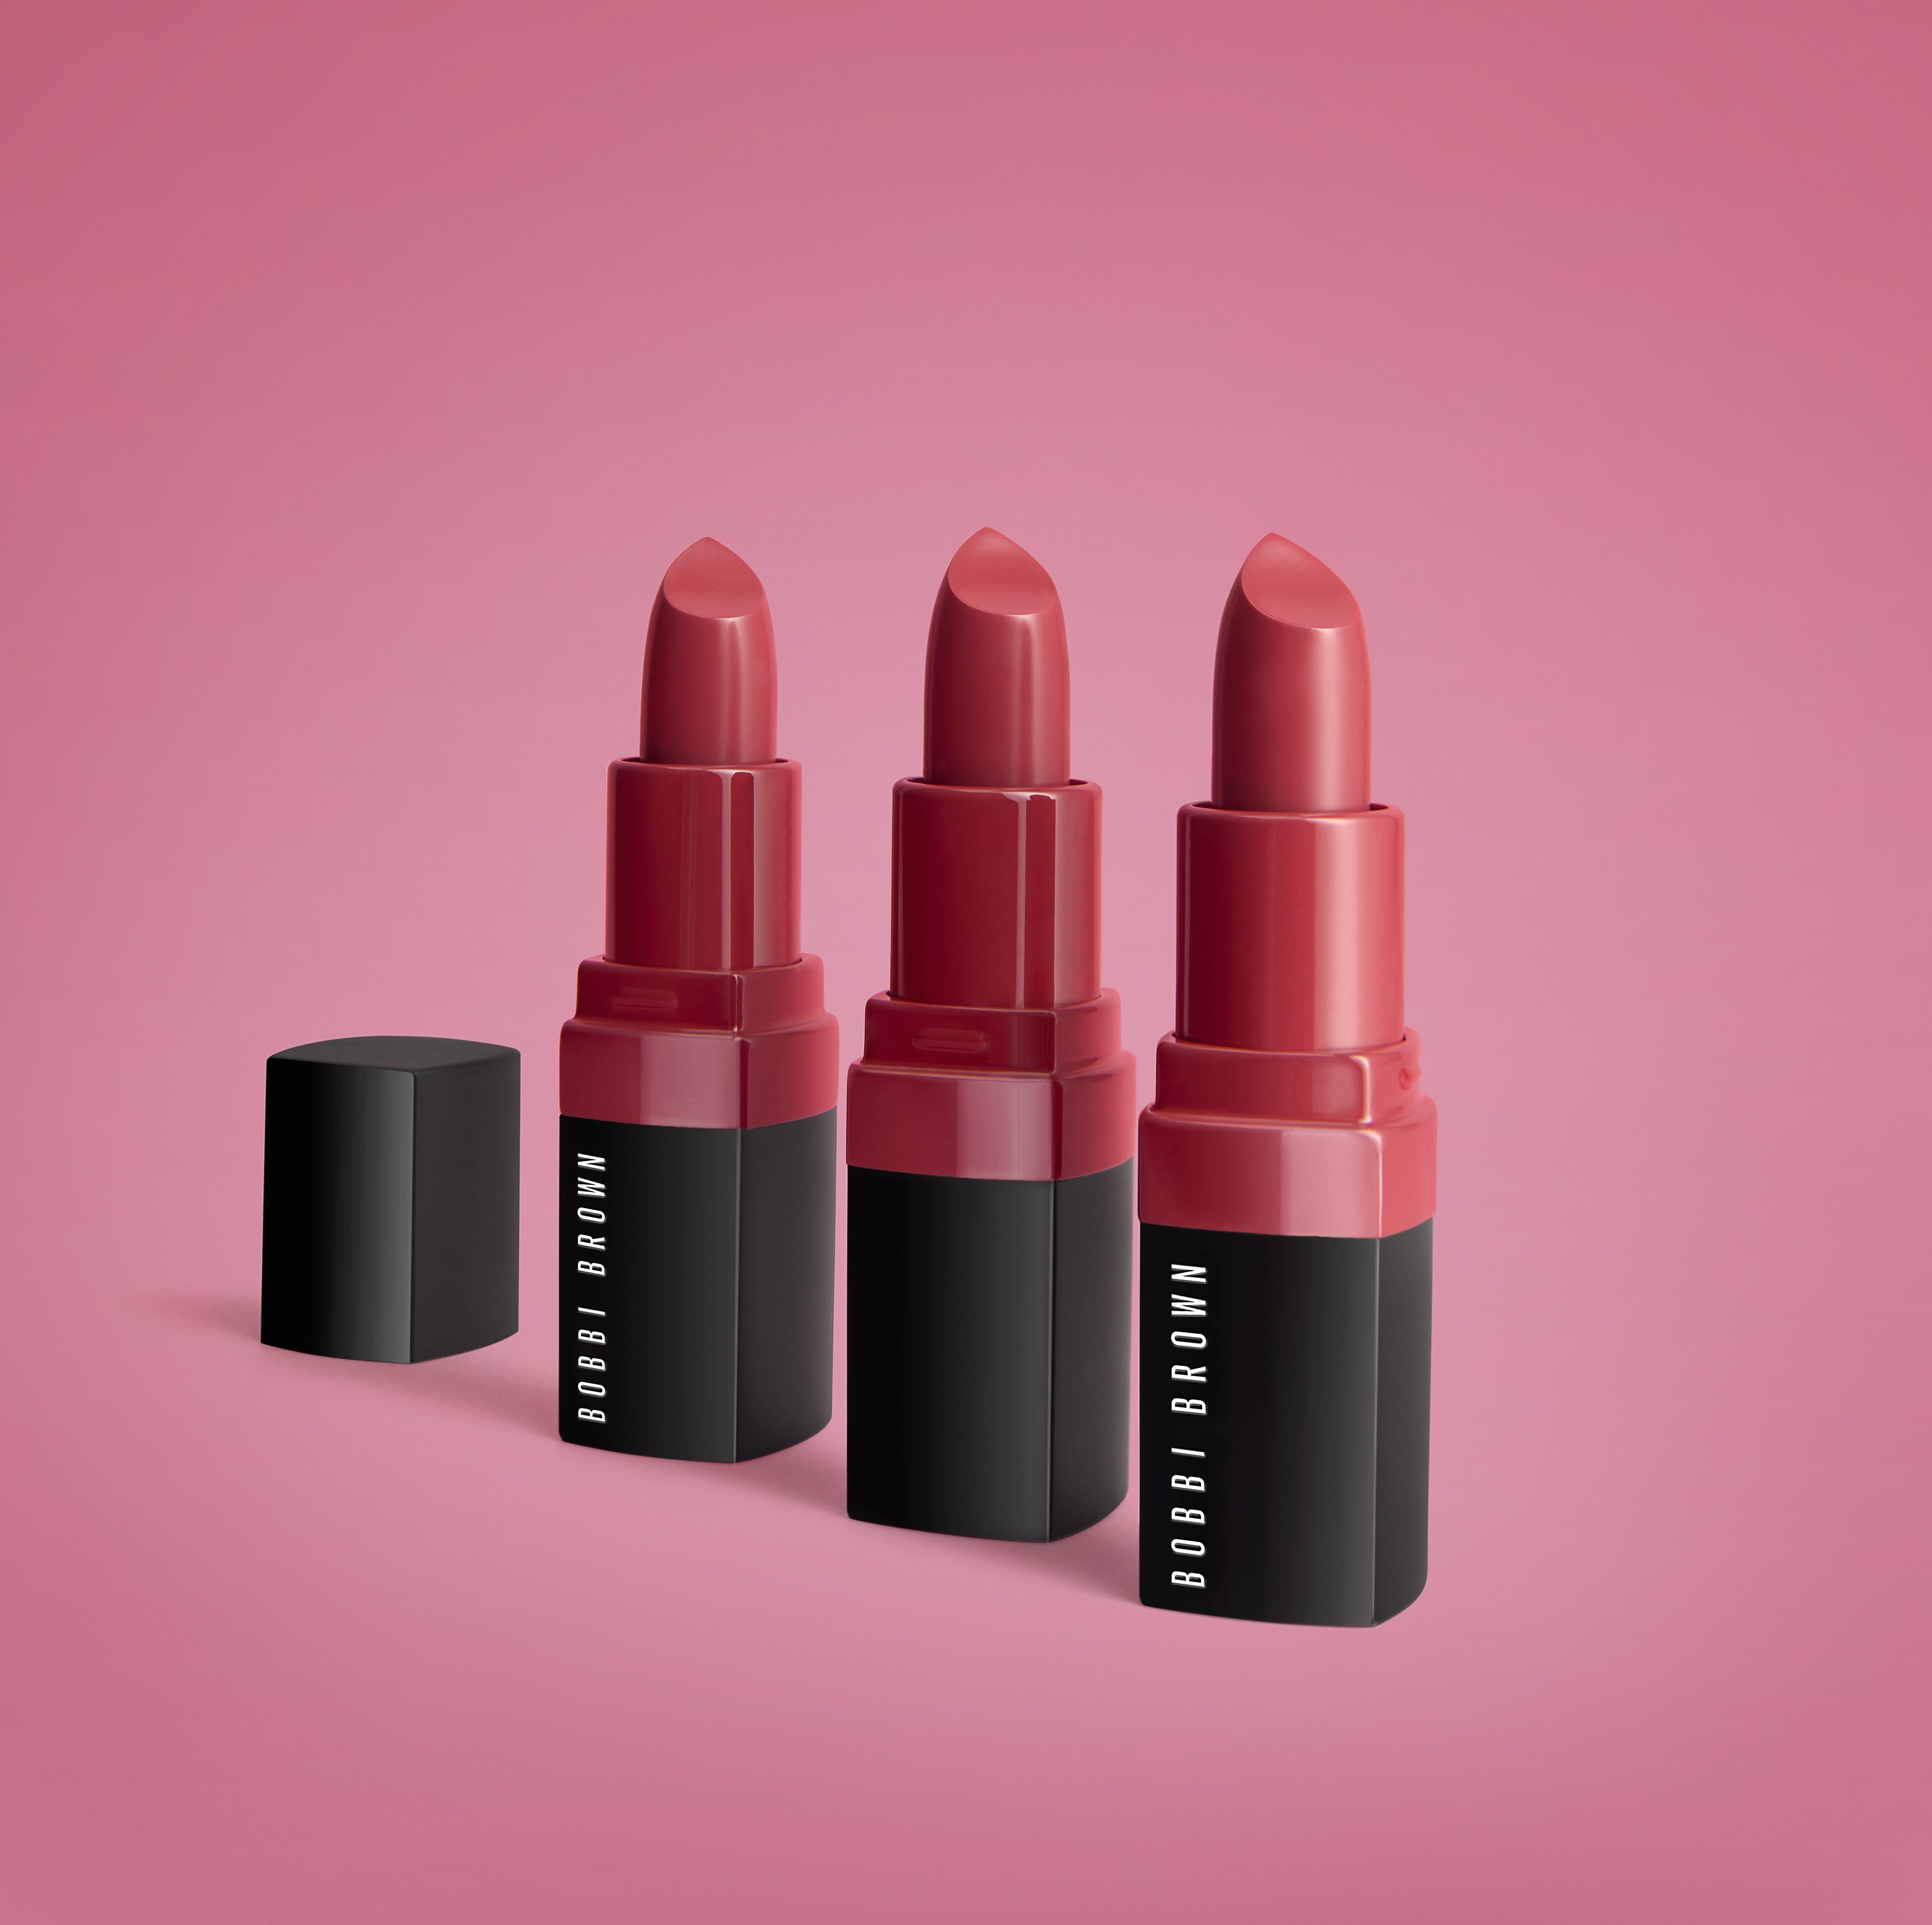 bobbi-brown-minis-collection-Crushed-Lip-Color-babe-ruby-2